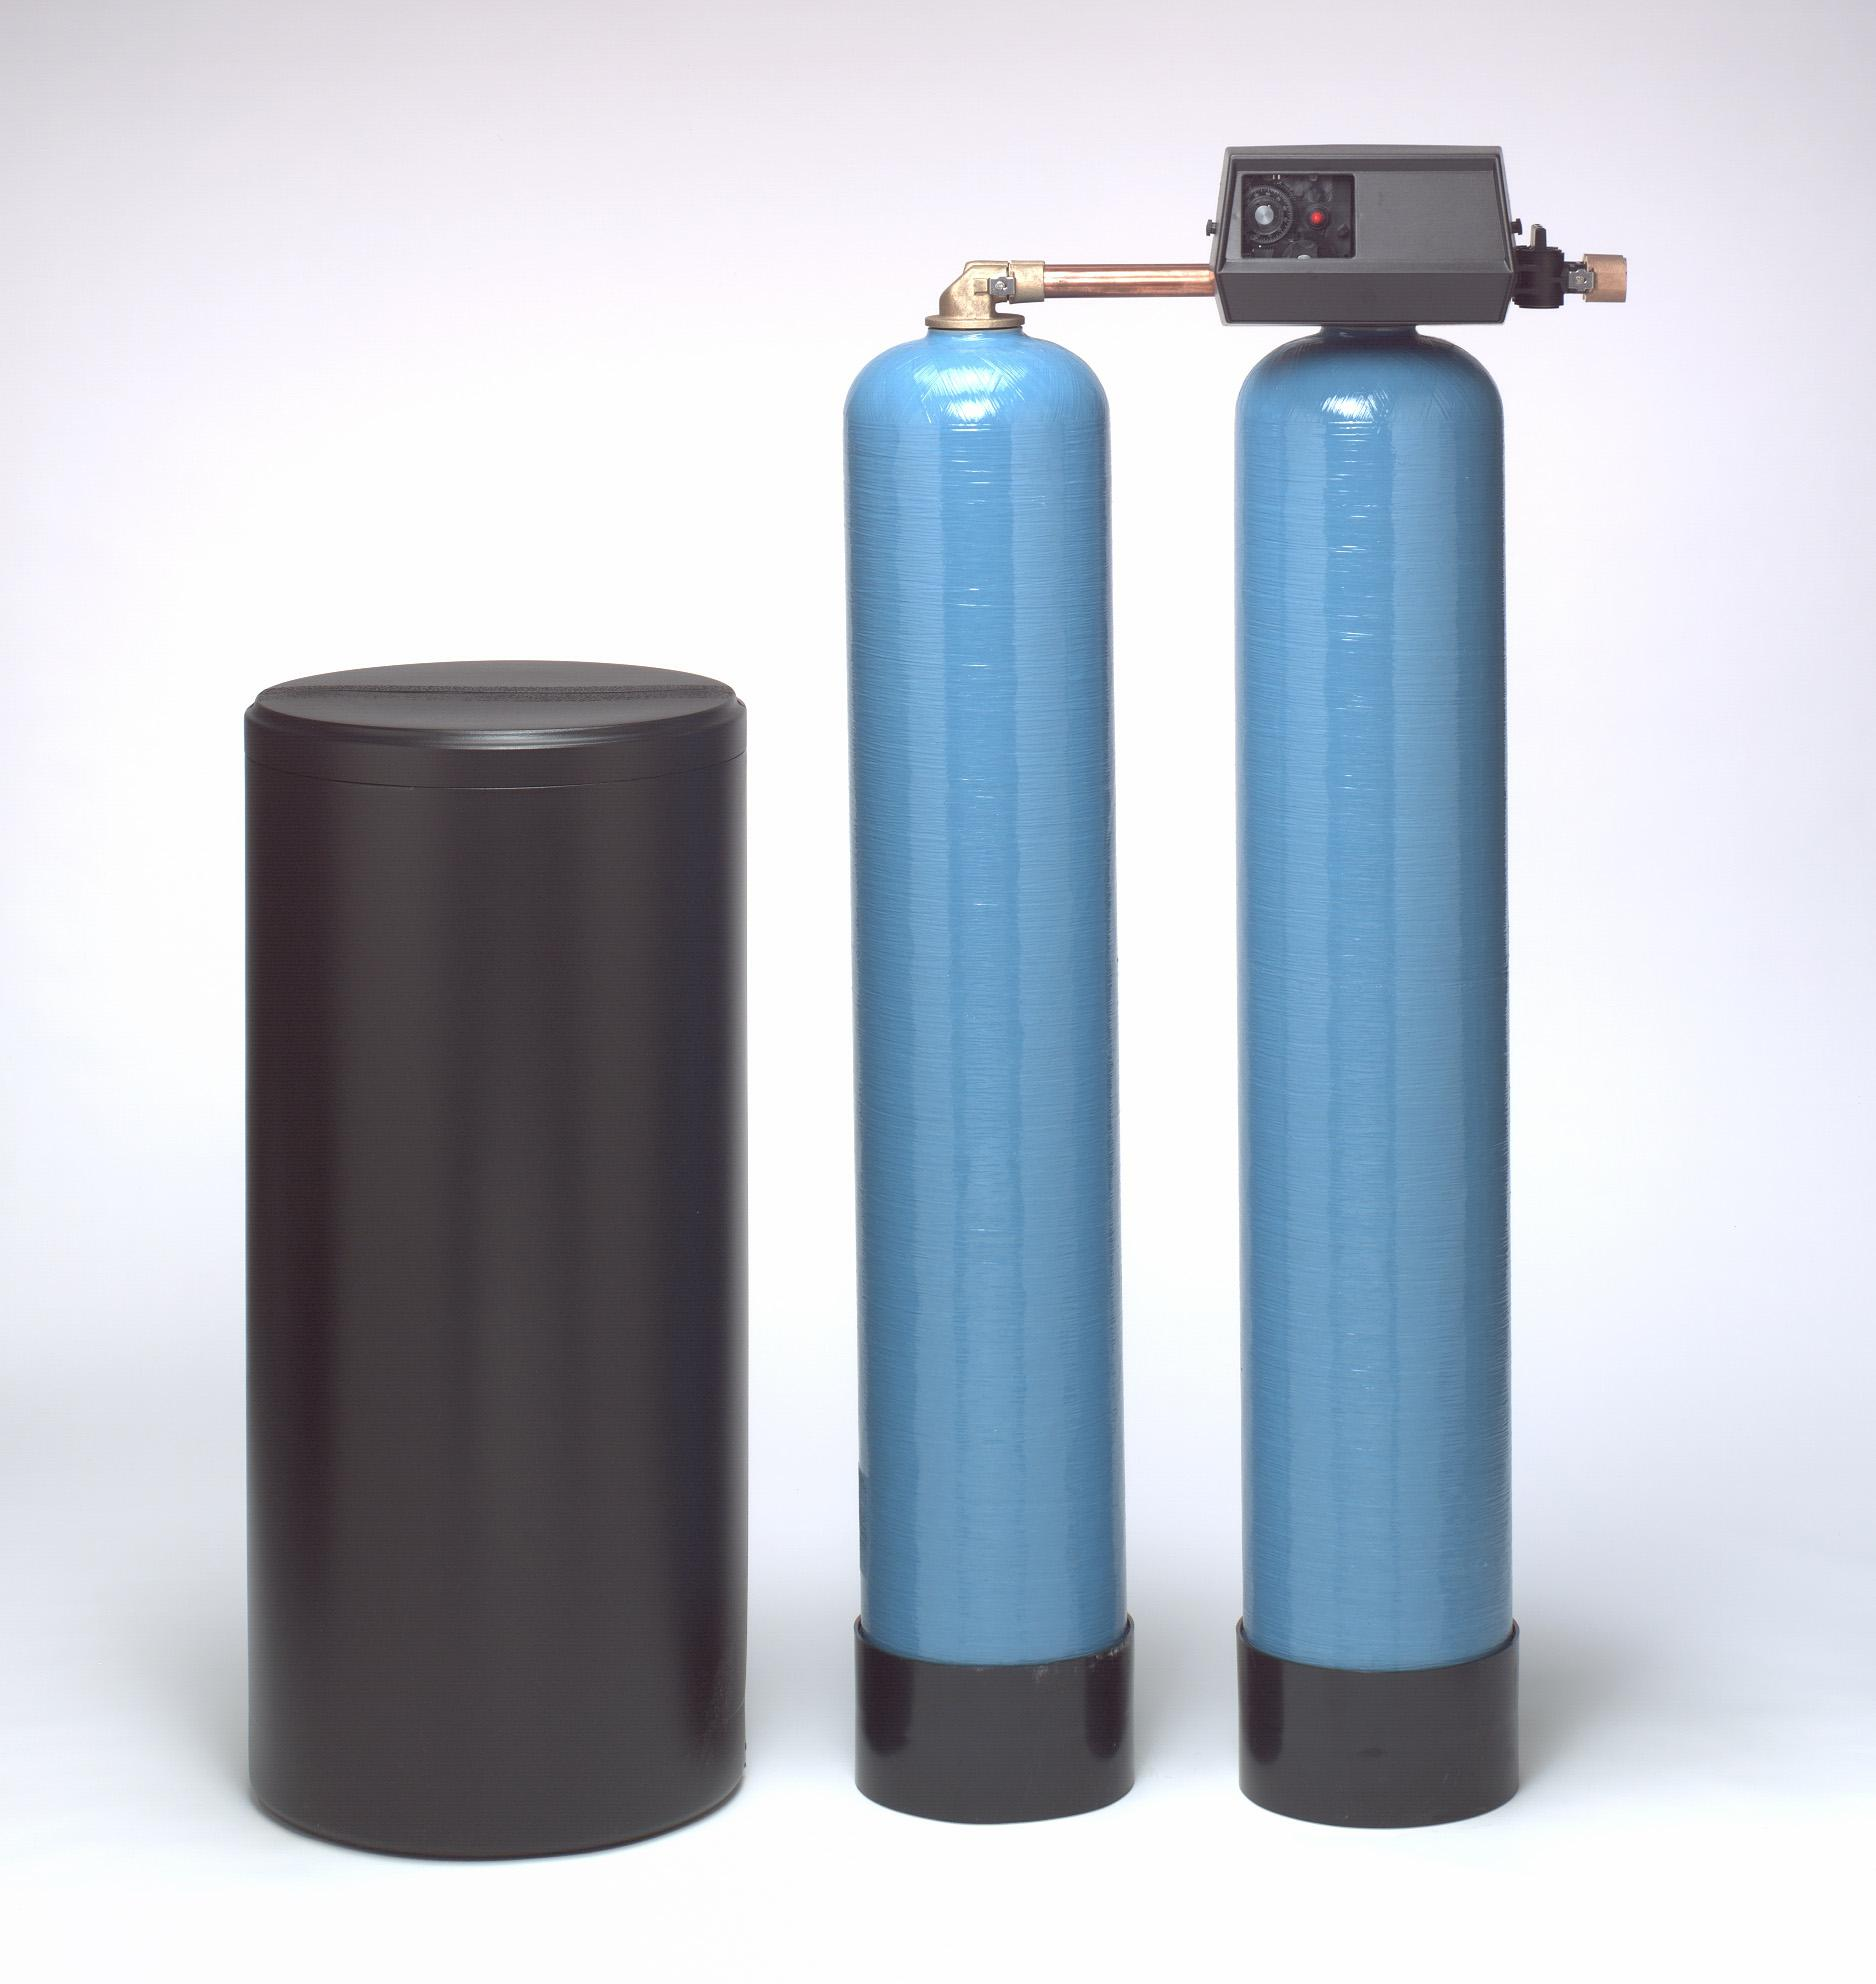 Pelican Water Softeners and Water Filter Systems - PelicanWater.com